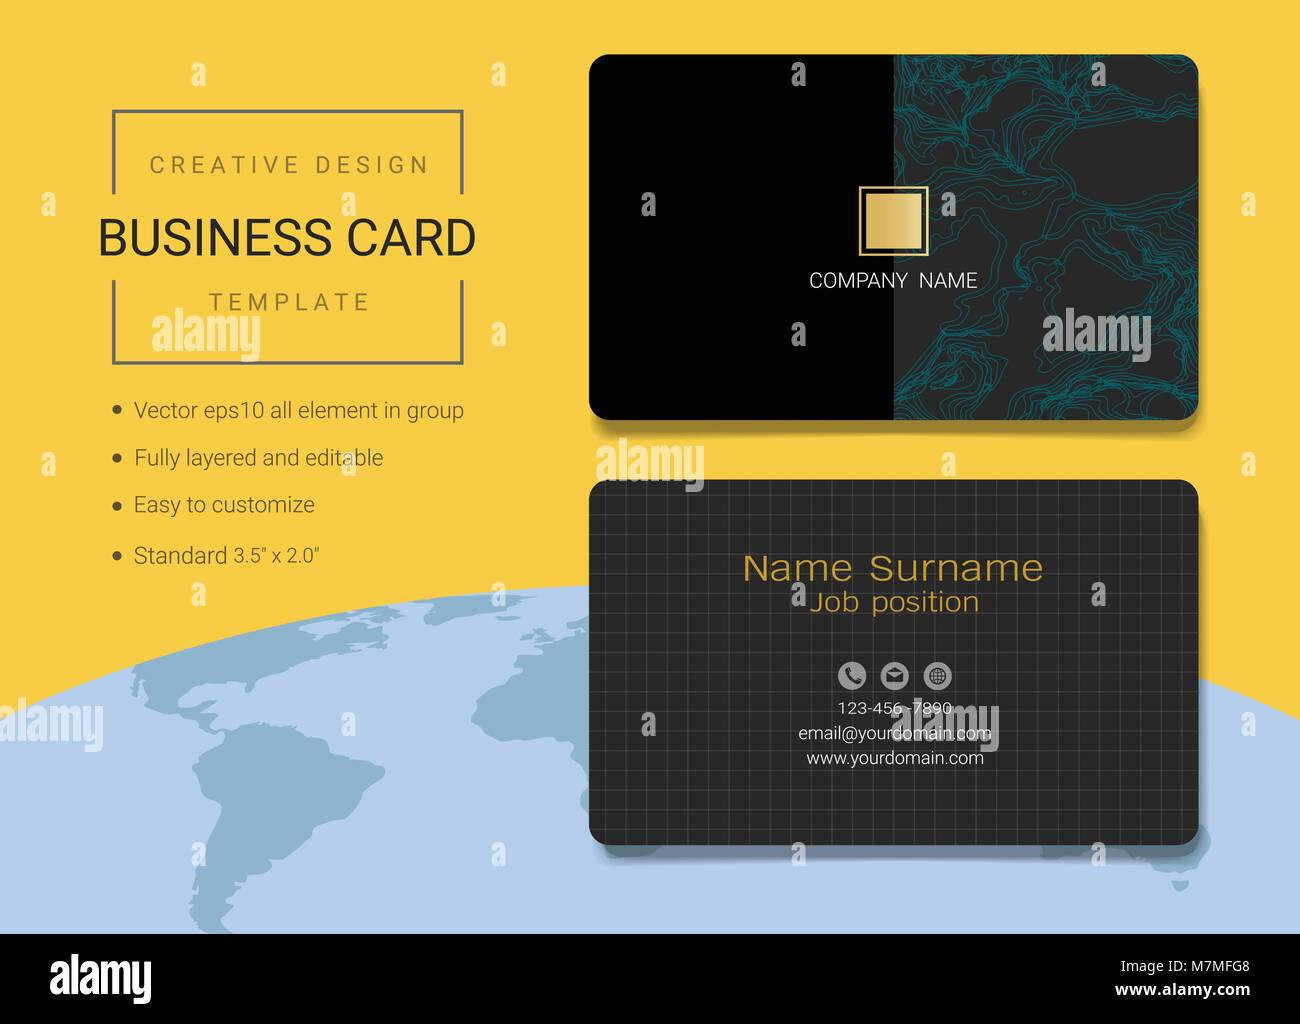 Creative business card or name card template simple style also creative business card or name card template simple style also modern and elegant with abstract geometric lines background accmission Images